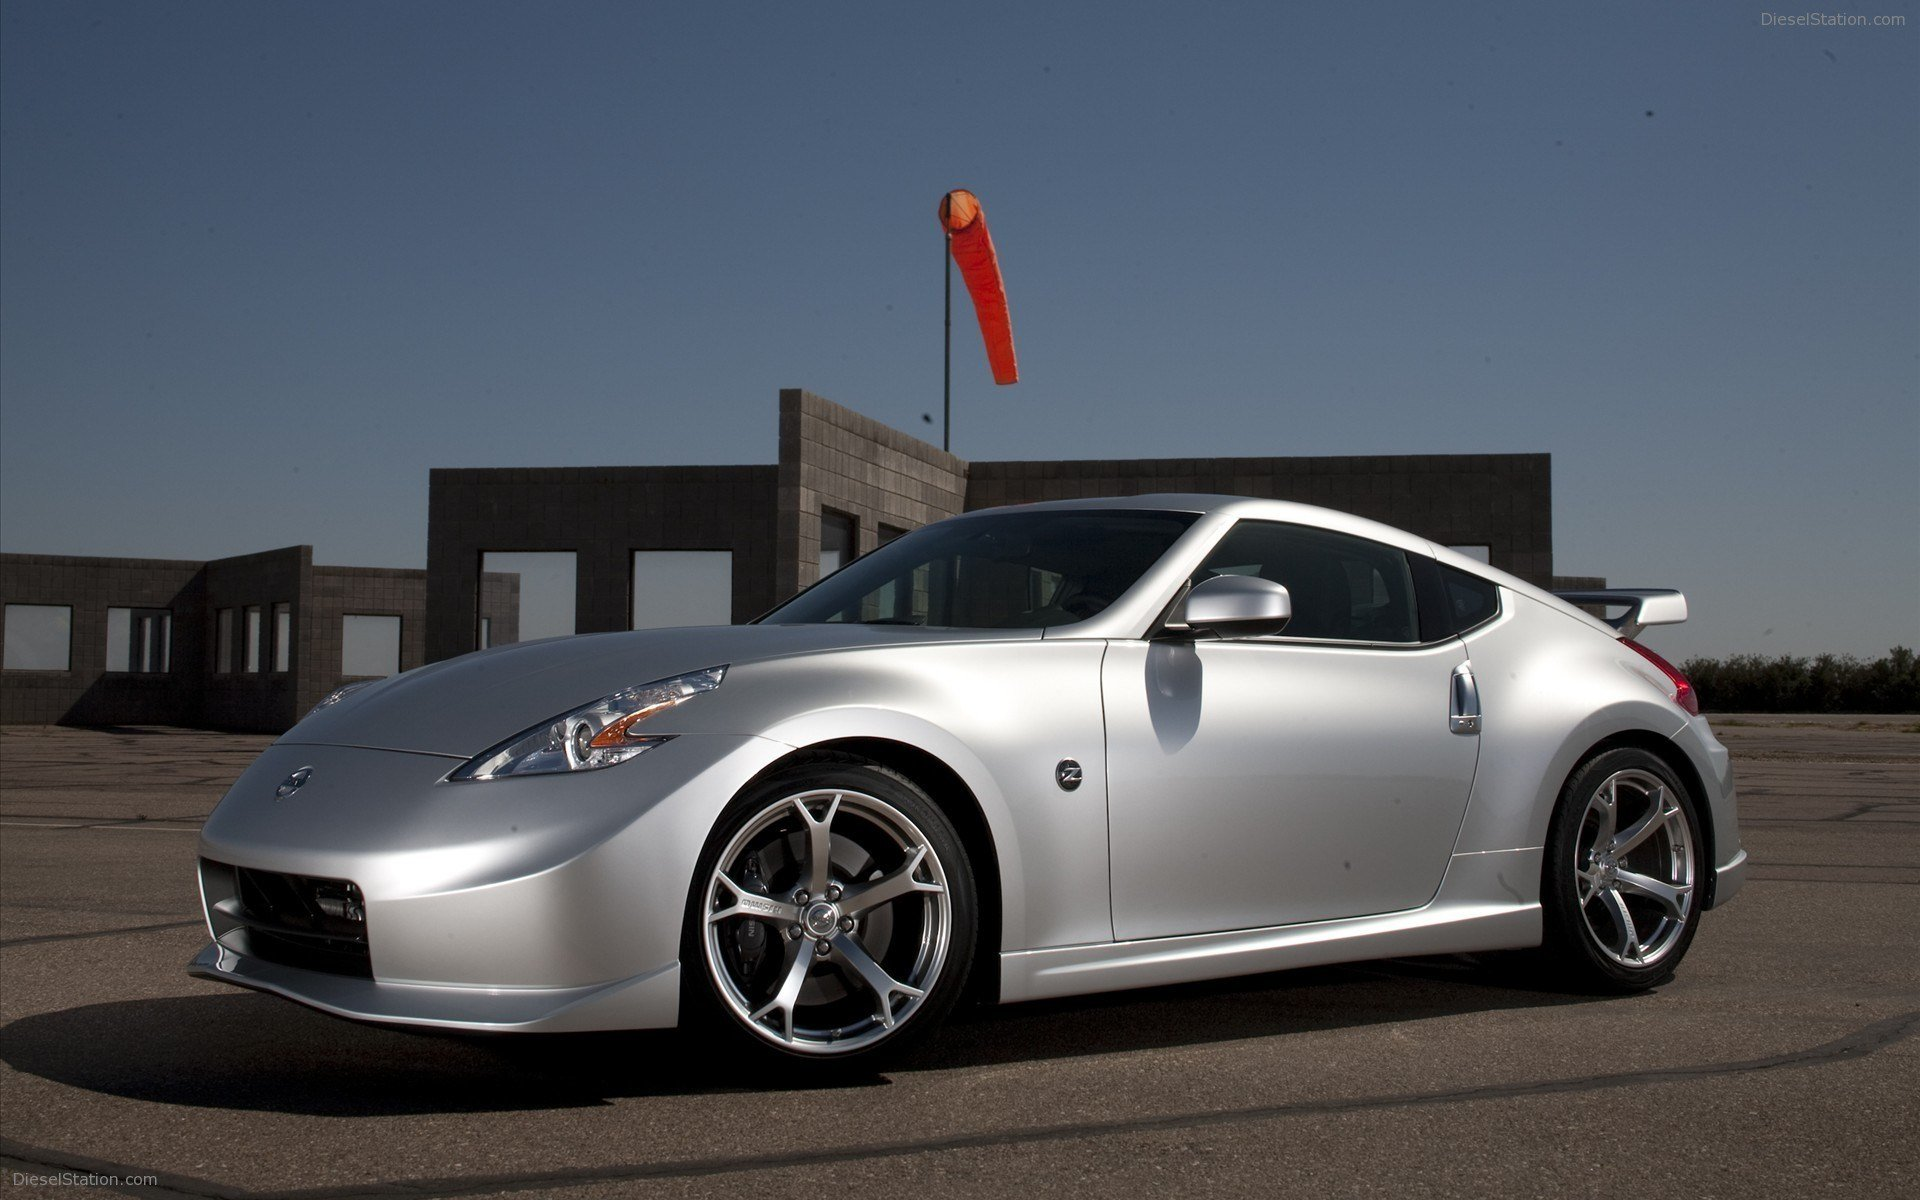 Latest 2009 Nismo Nissan 370Z Widescreen Exotic Car Wallpapers Free Download